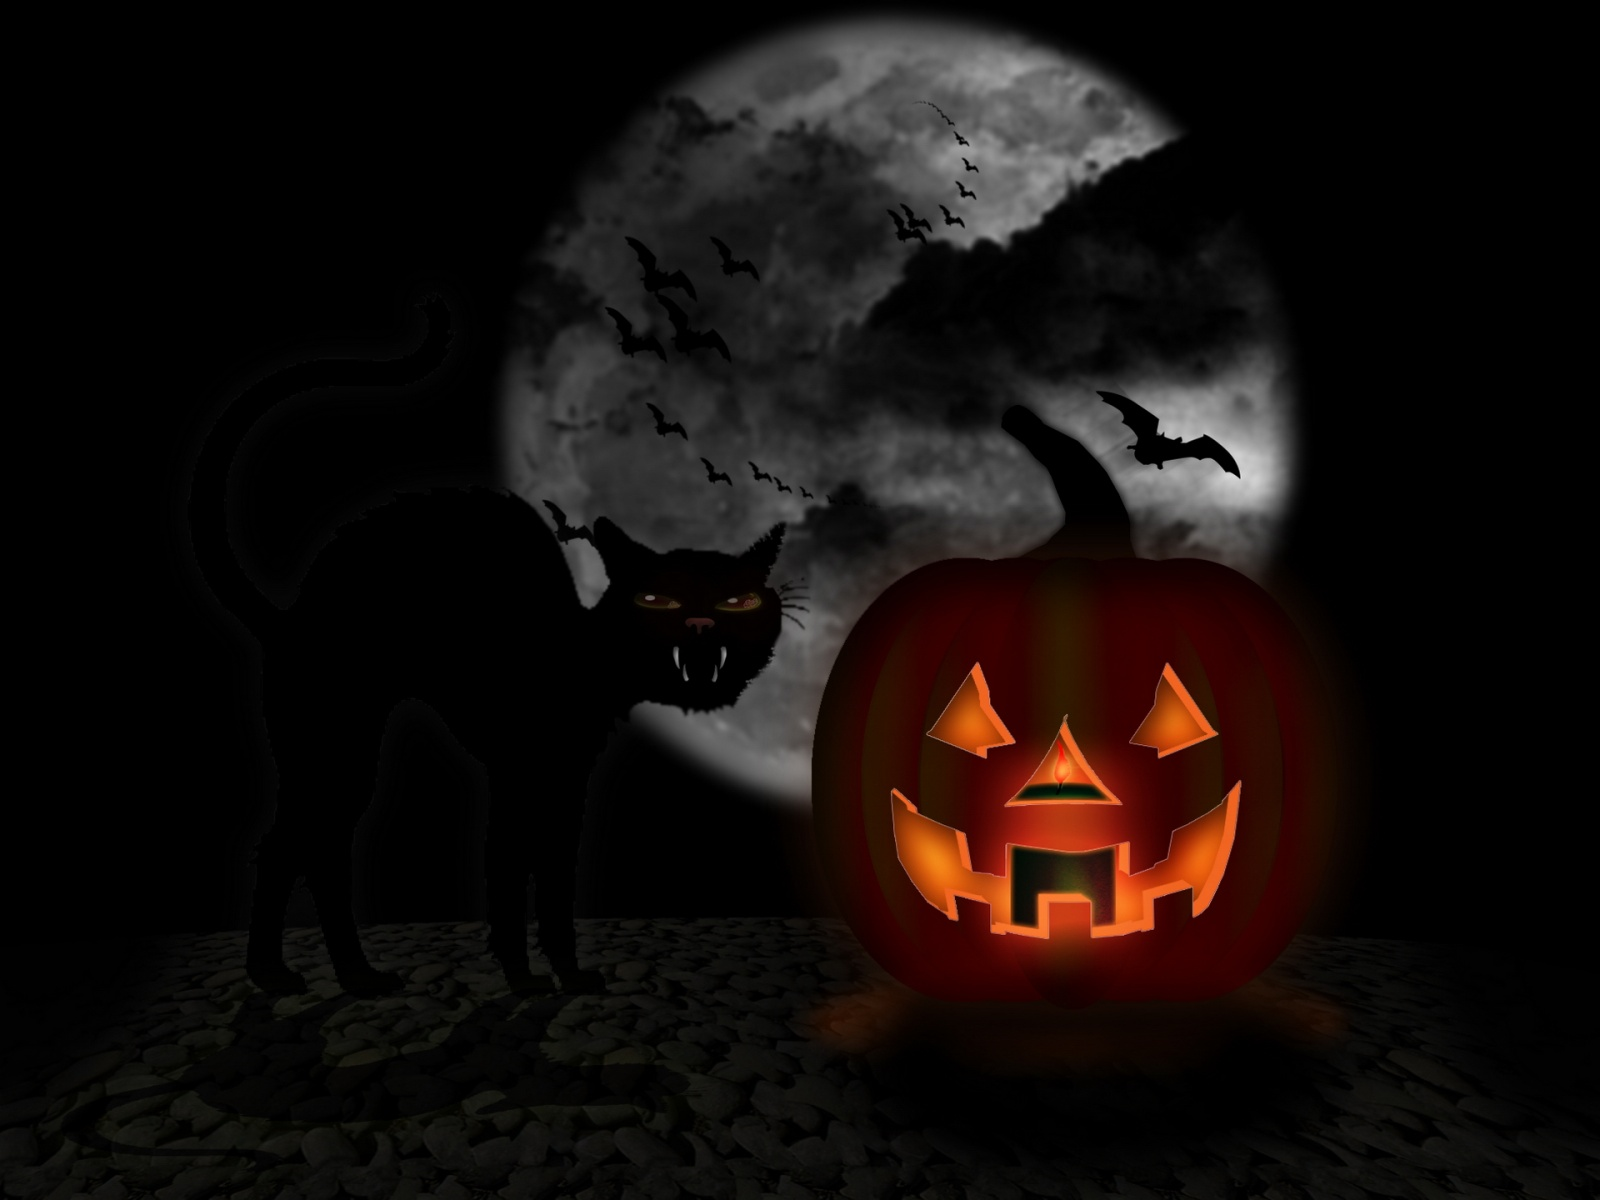 trololo blogg: Cute Halloween Wallpaper Desktop